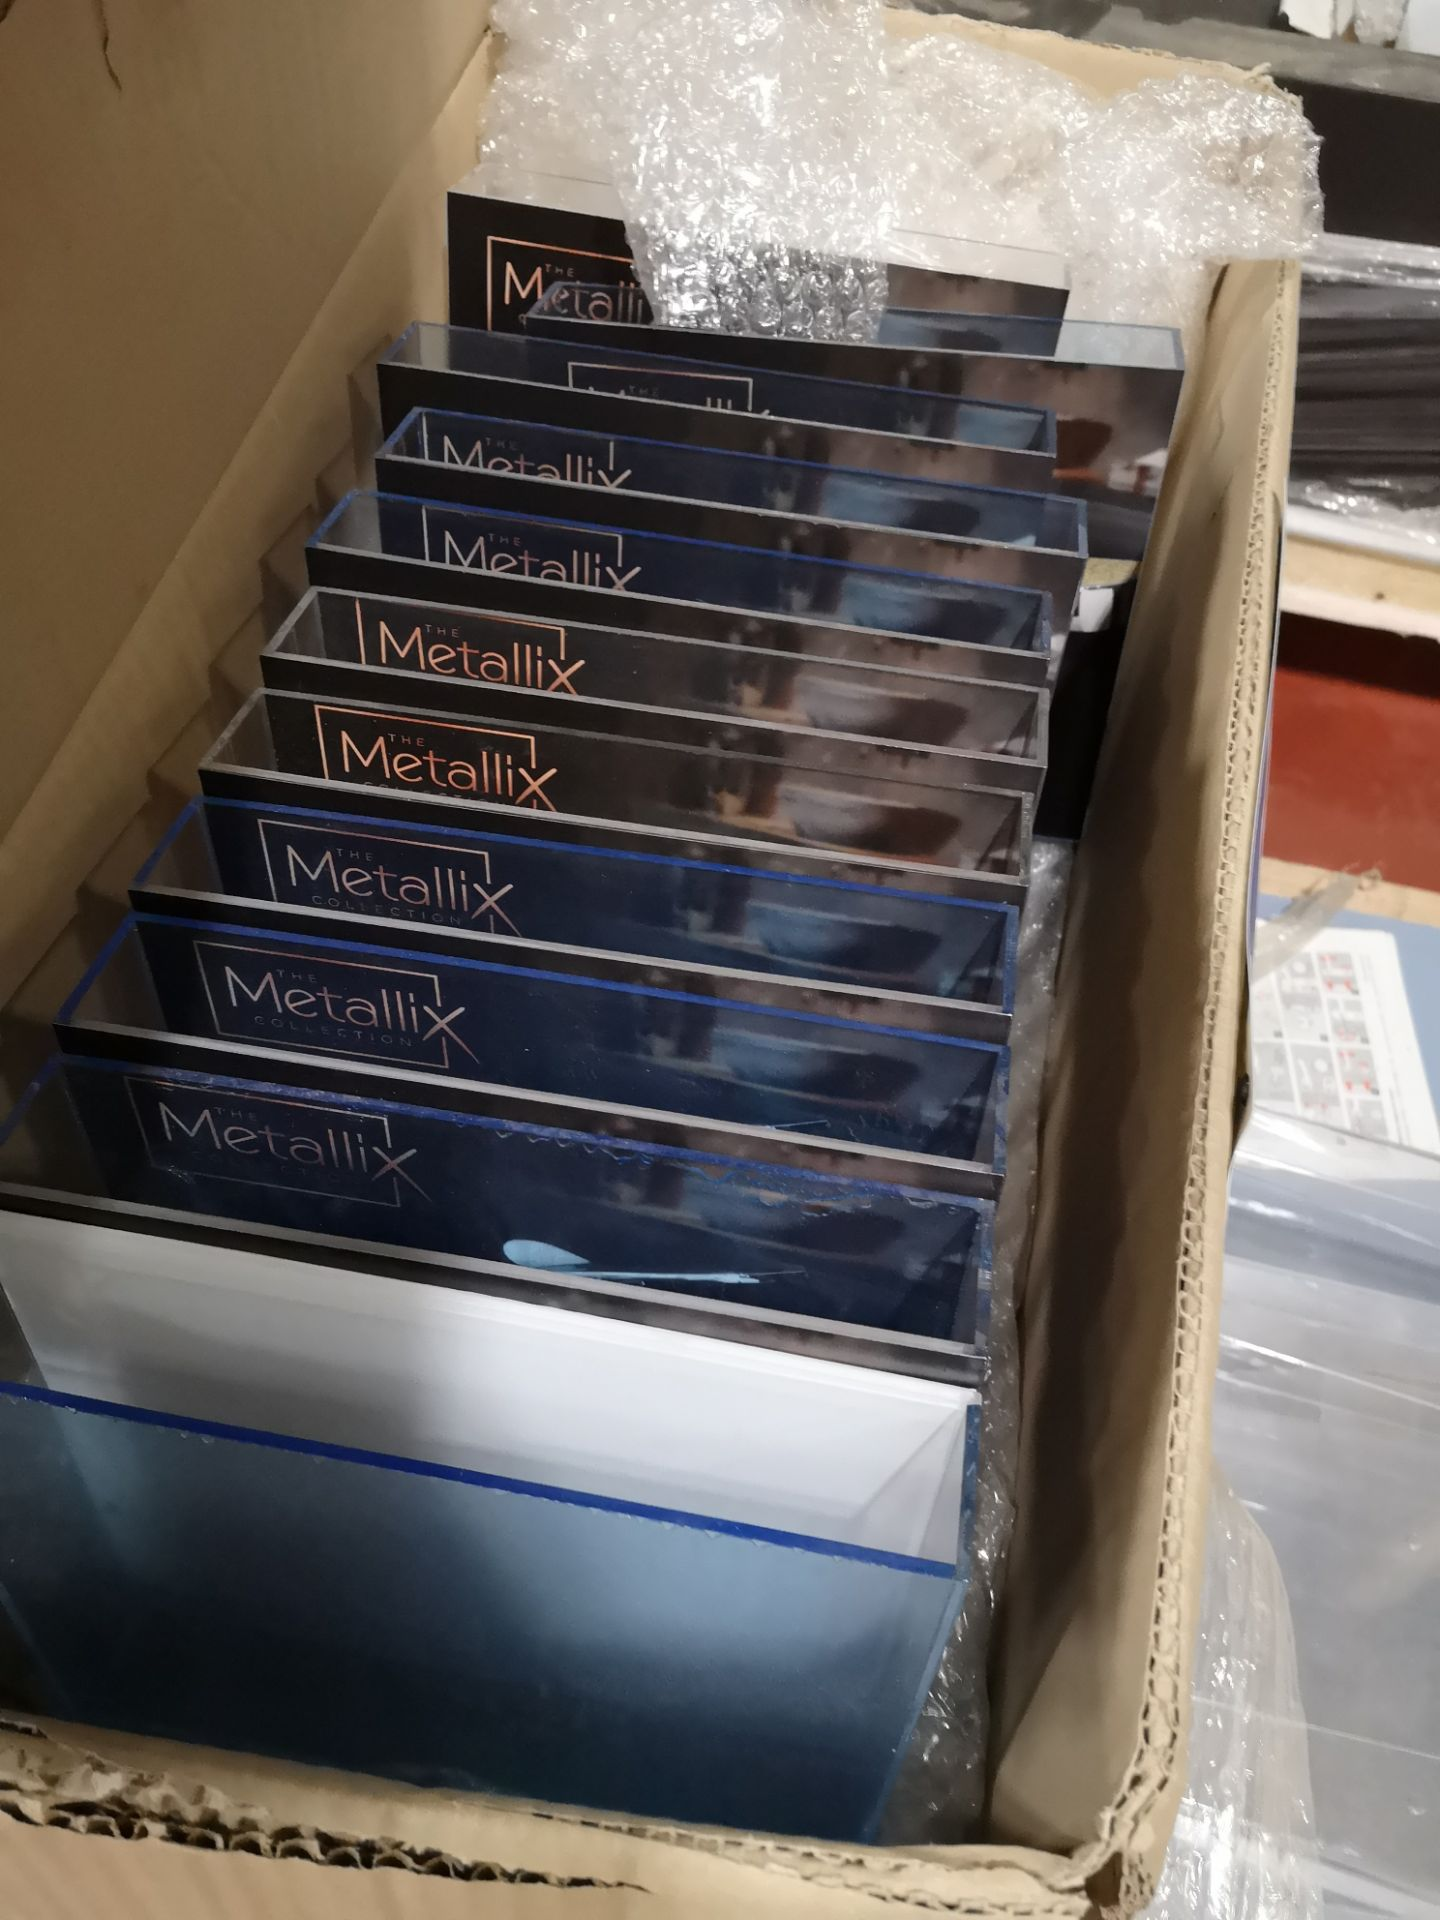 Lot 159 - Quantity of Advertising Leaflet Stands as Set Out on Pallet